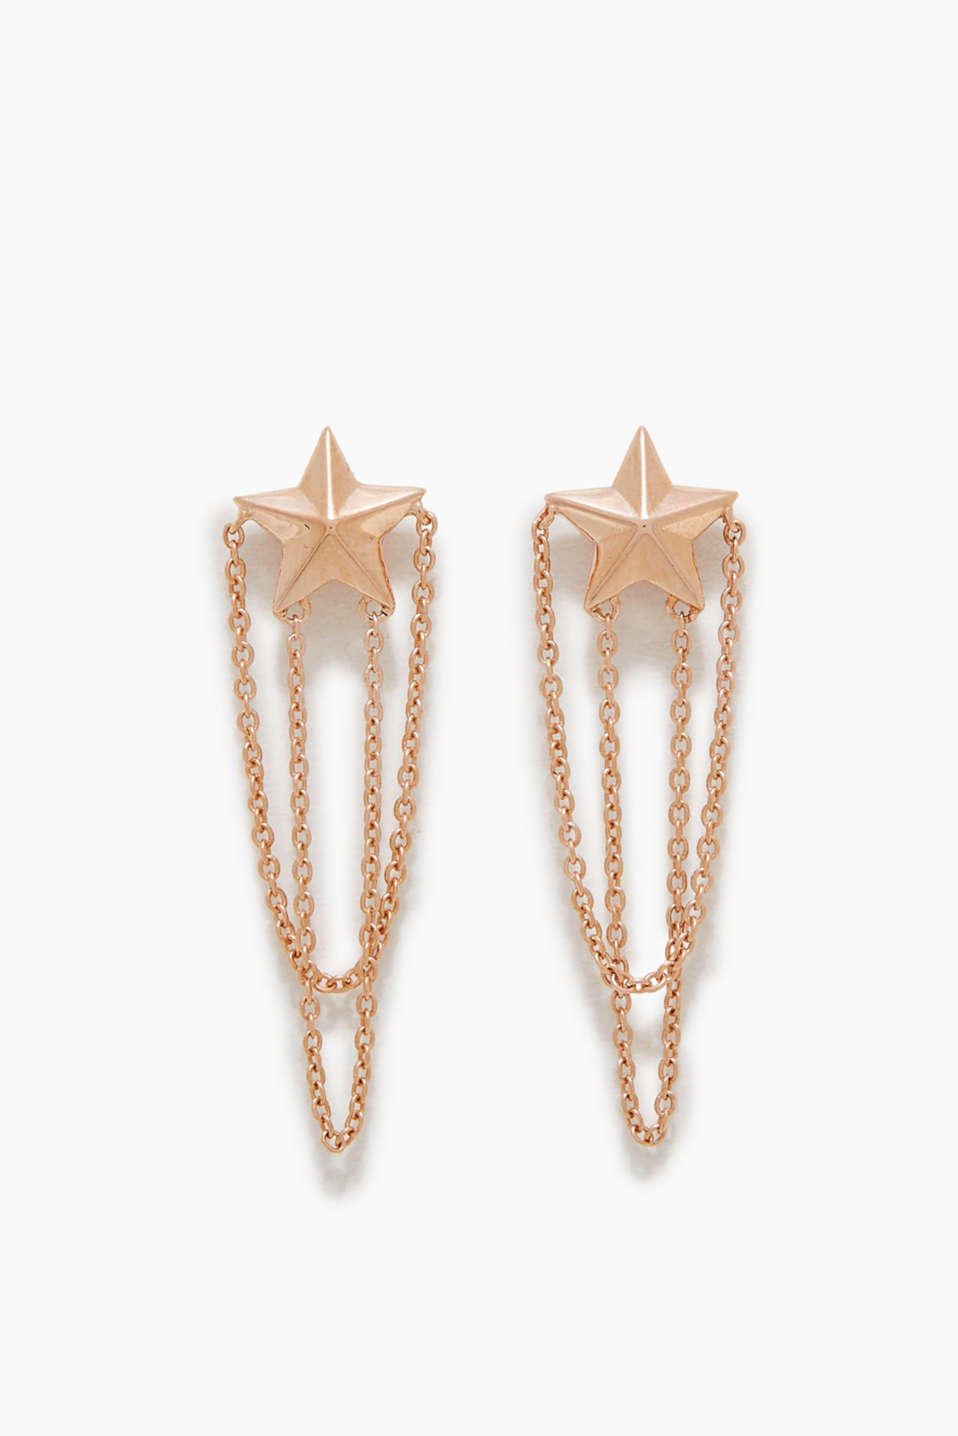 Esprit - Star-shaped stud earrings in sterling silver